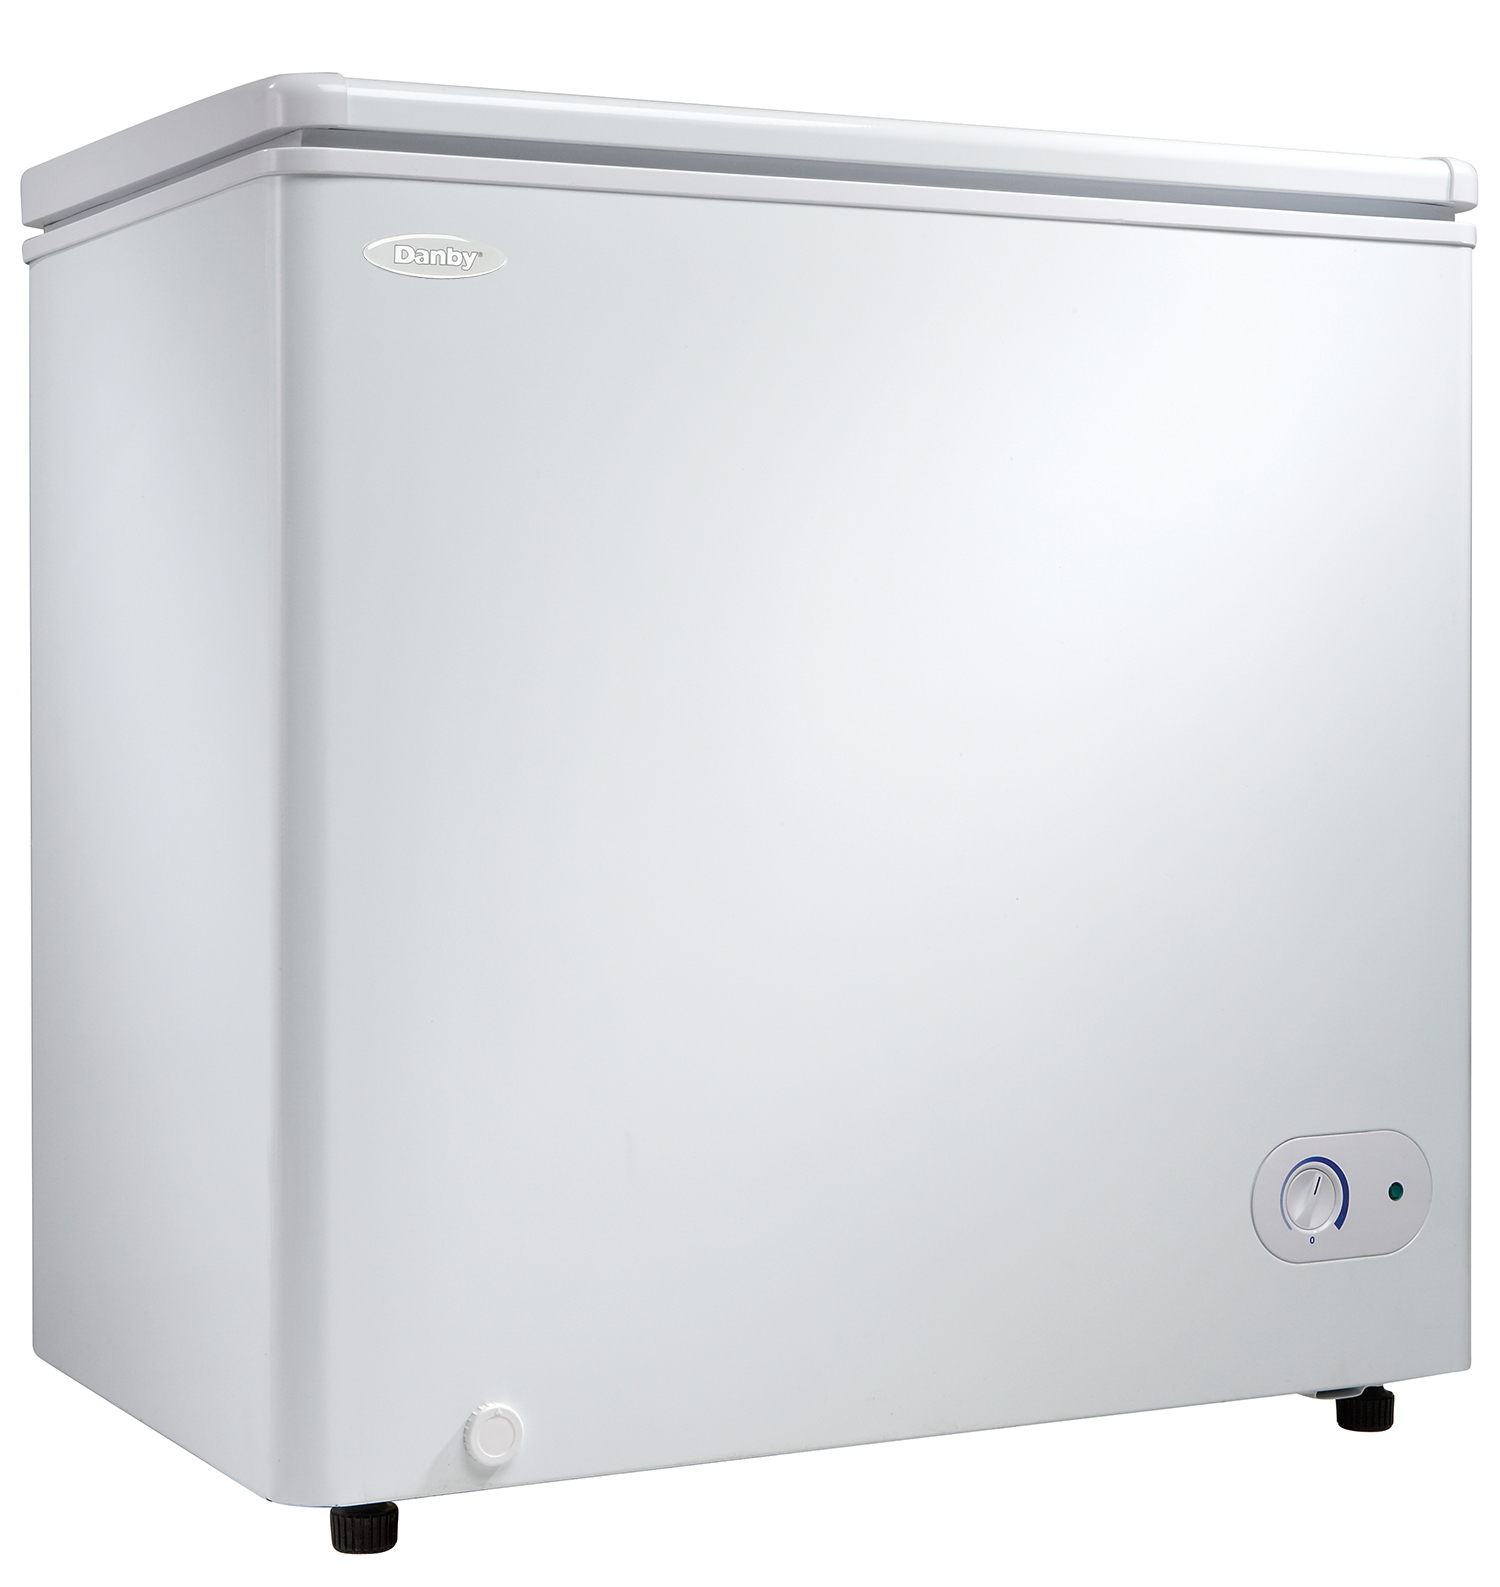 DCF550W1 closed2 dcf550w1 danby 5 5 cu ft freezer en wiring diagram by vin at bakdesigns.co